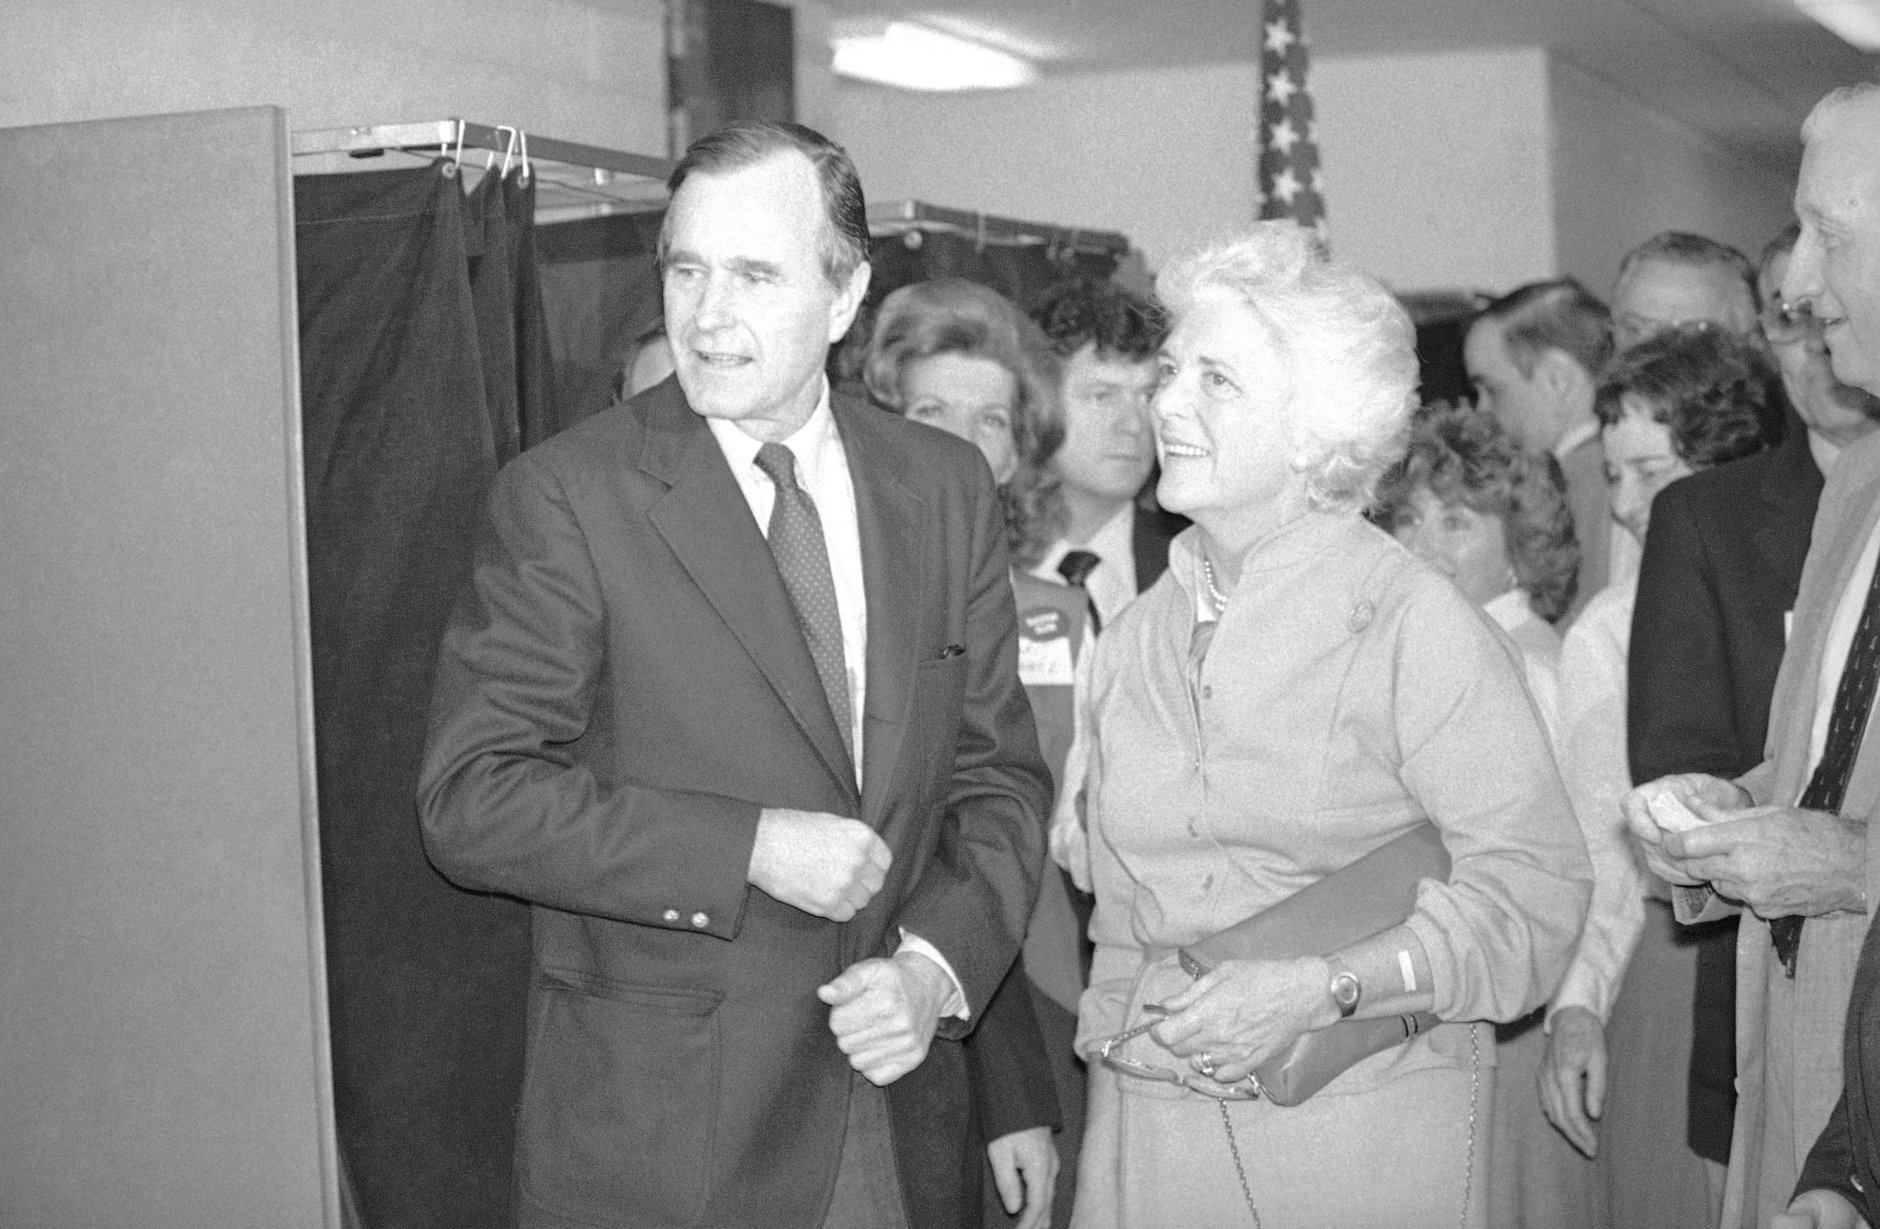 Republican vice-Presidential candidate and wife, Barbara are all smiles after casting their vote in the general election at their Houston precinct, Tuesday, Nov. 4, 1980. Bush was happy over the heavy turnout of voters at his precinct. (AP Photo)